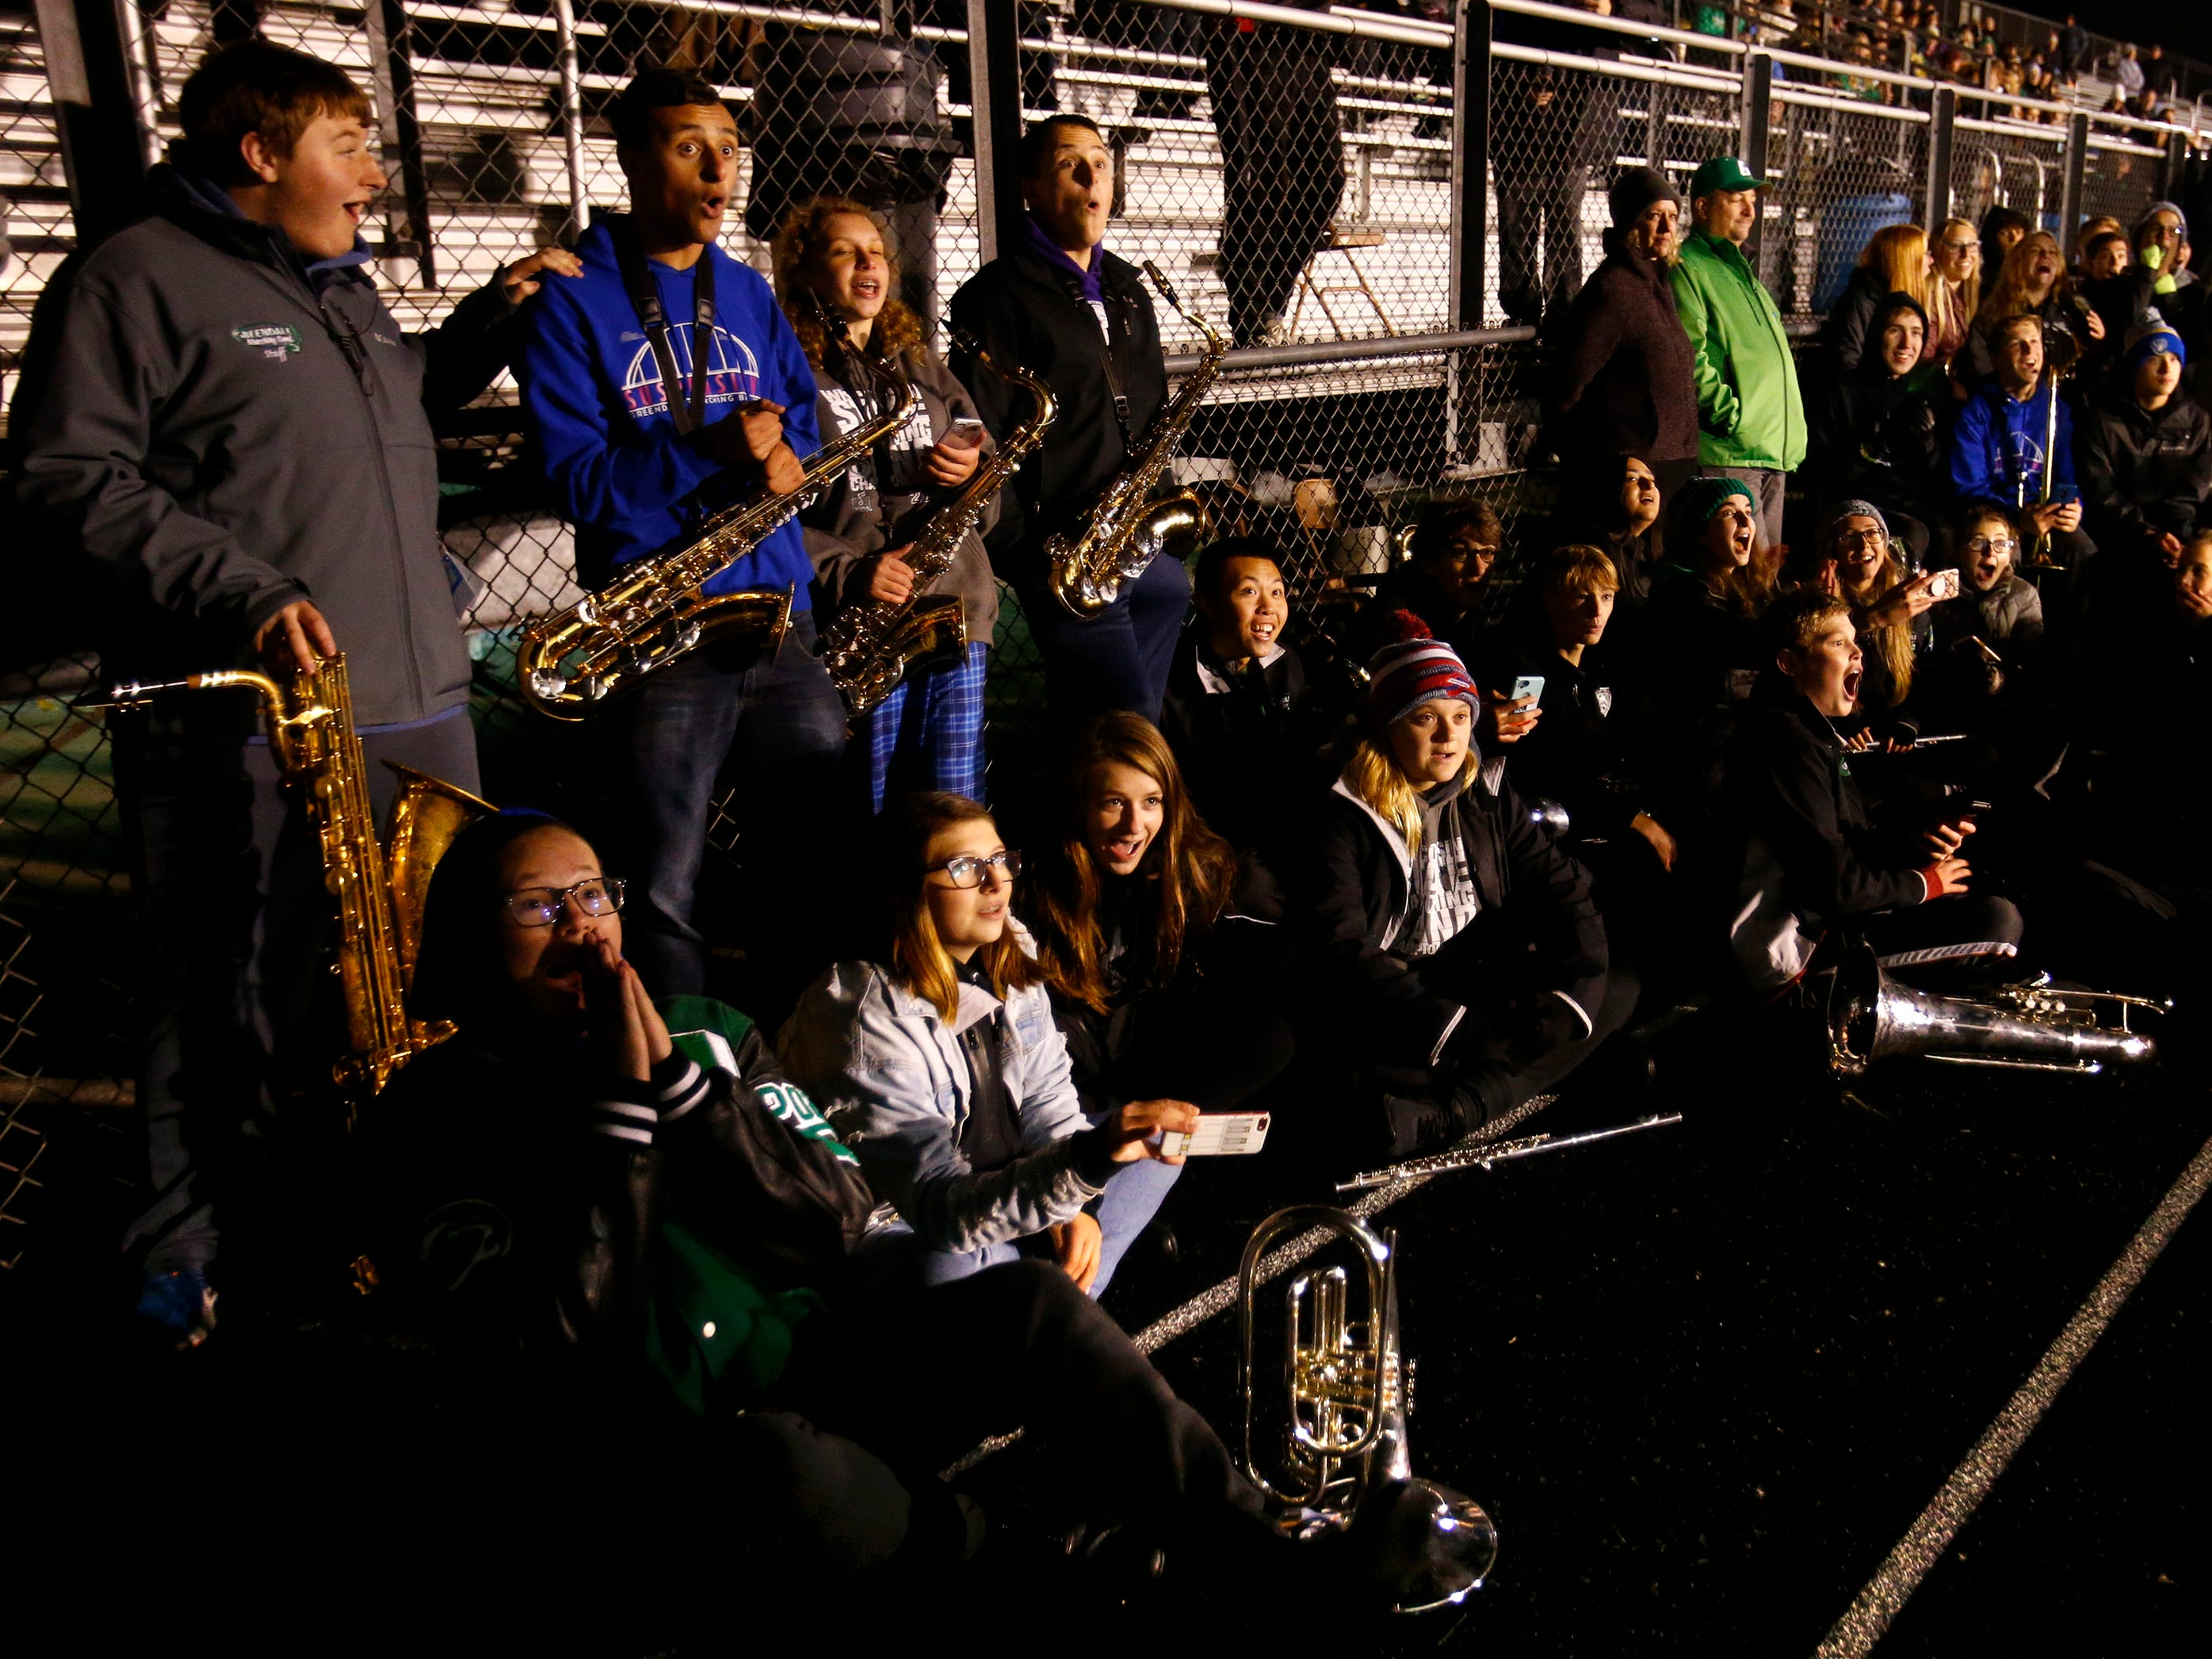 During an Oct. 23 rehearsal of its show with district eighth grade students, the Greendale Marching Band learned it was one of 20 bands accepted to perform in the 2020 Pasadena Tournament of Roses parade.